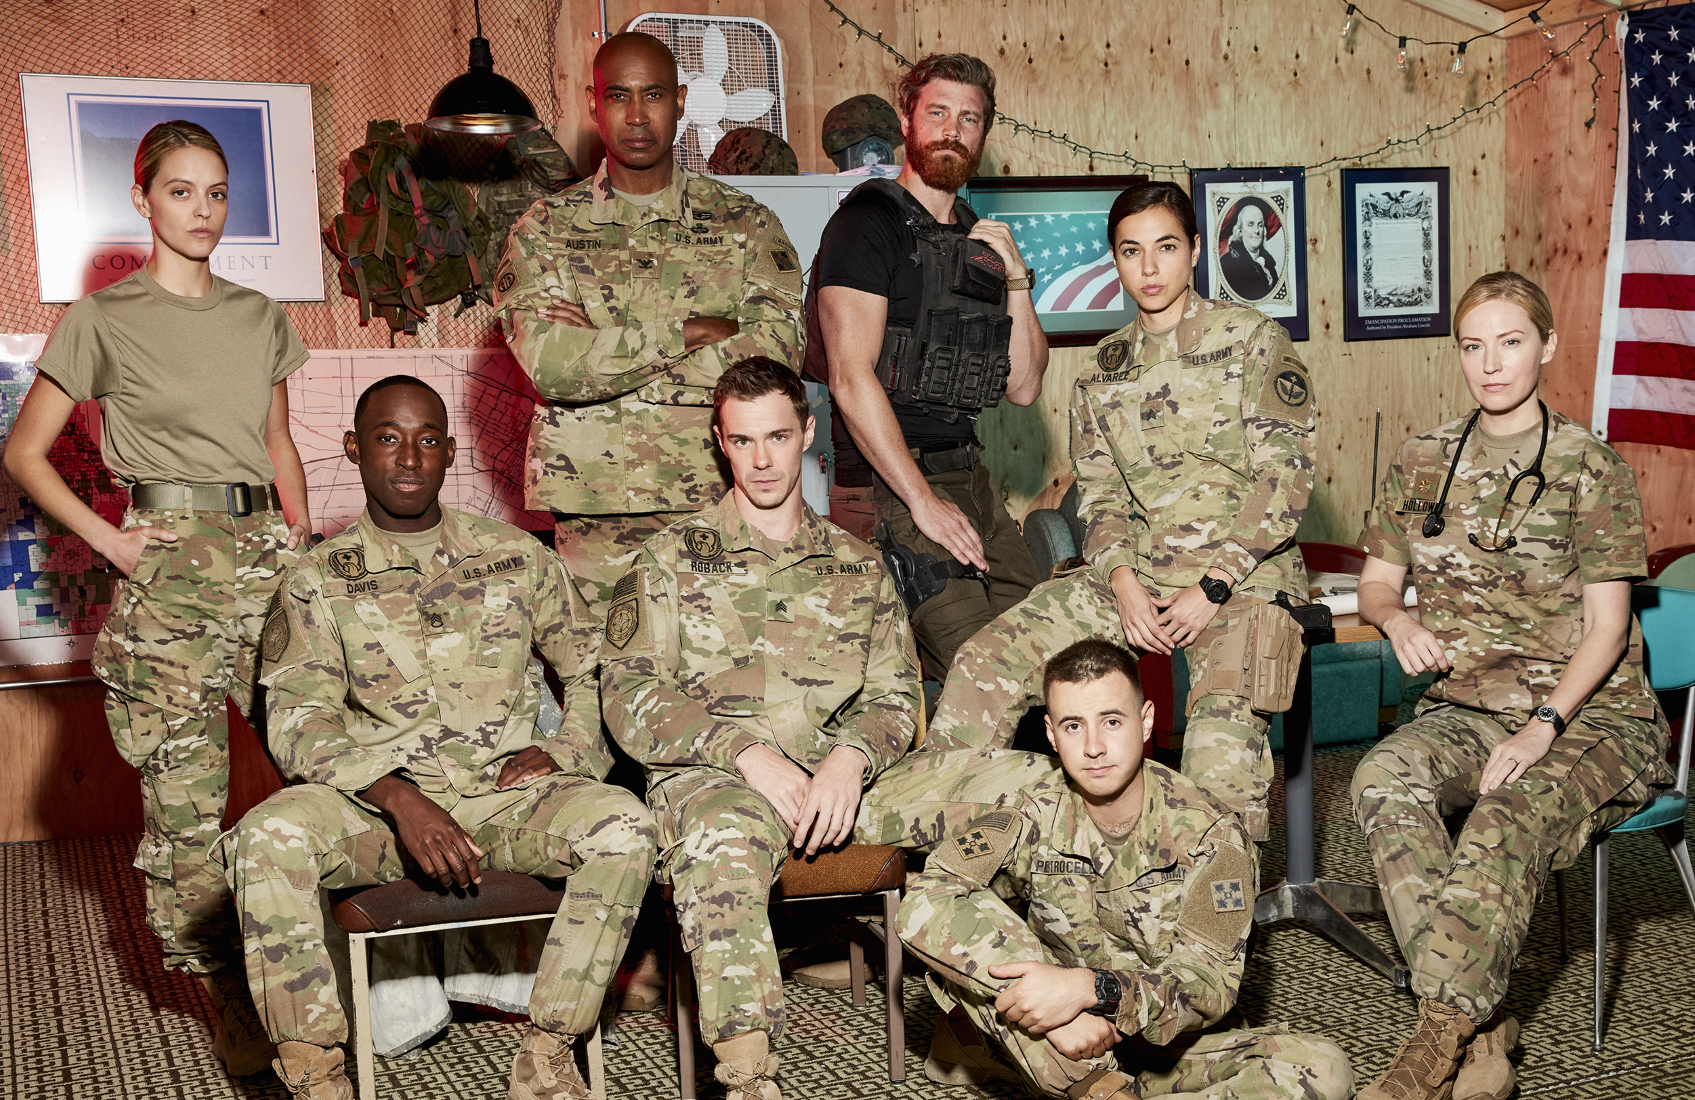 A large diverse cast adds to 68 Whiskey's appeal. From left, Gage Golightly, Jeremy Tardy, Lamont Thompson, Sam Keeley, Derek Theler, Cristina Rodlo, Nicholas Coombe and Beth Riesgraf. (Paramount Network)